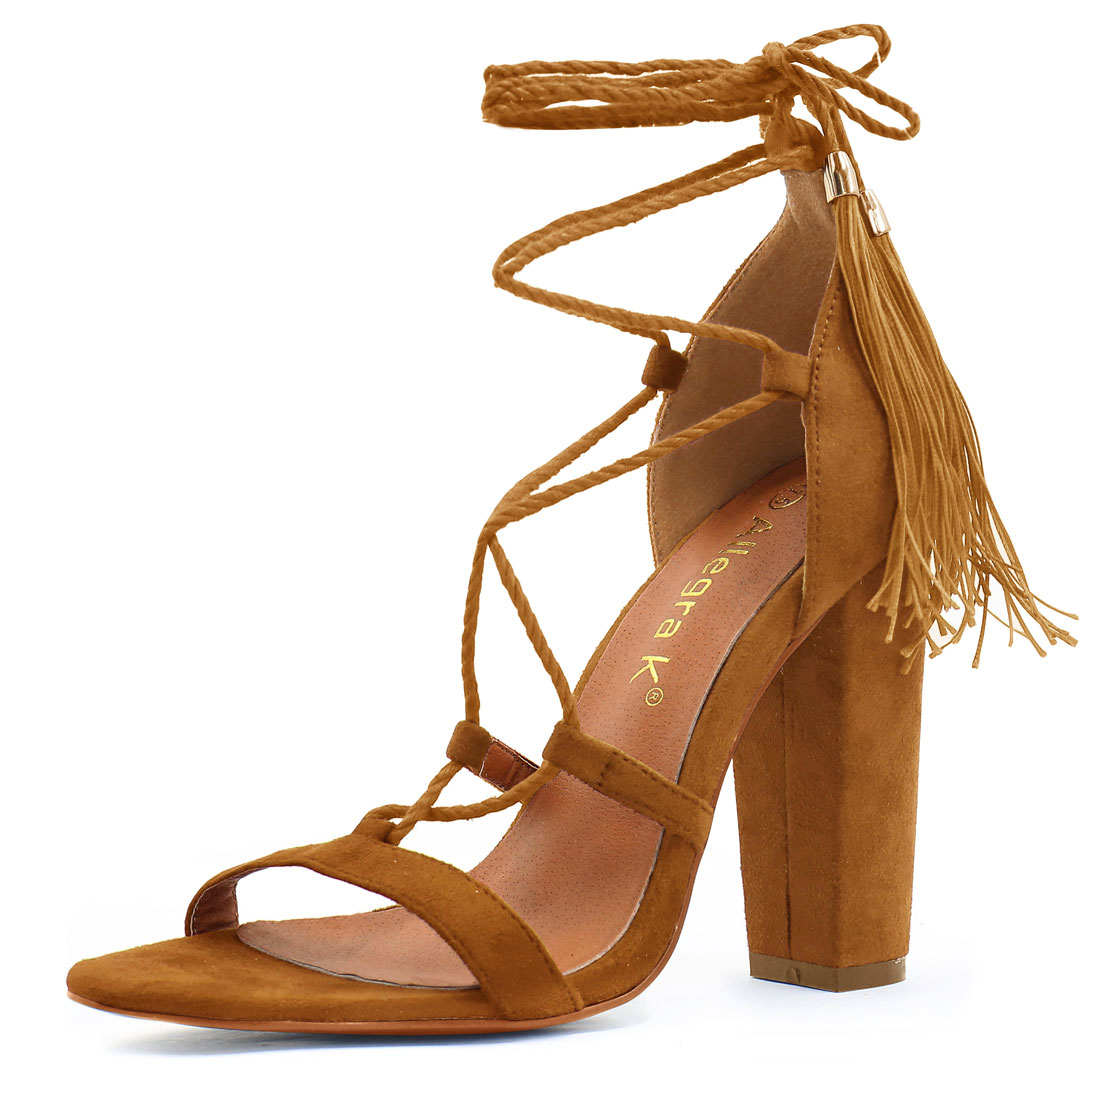 Women Chunky High Heel Tassel Closure Lace Up Sandals Camel US 7.5